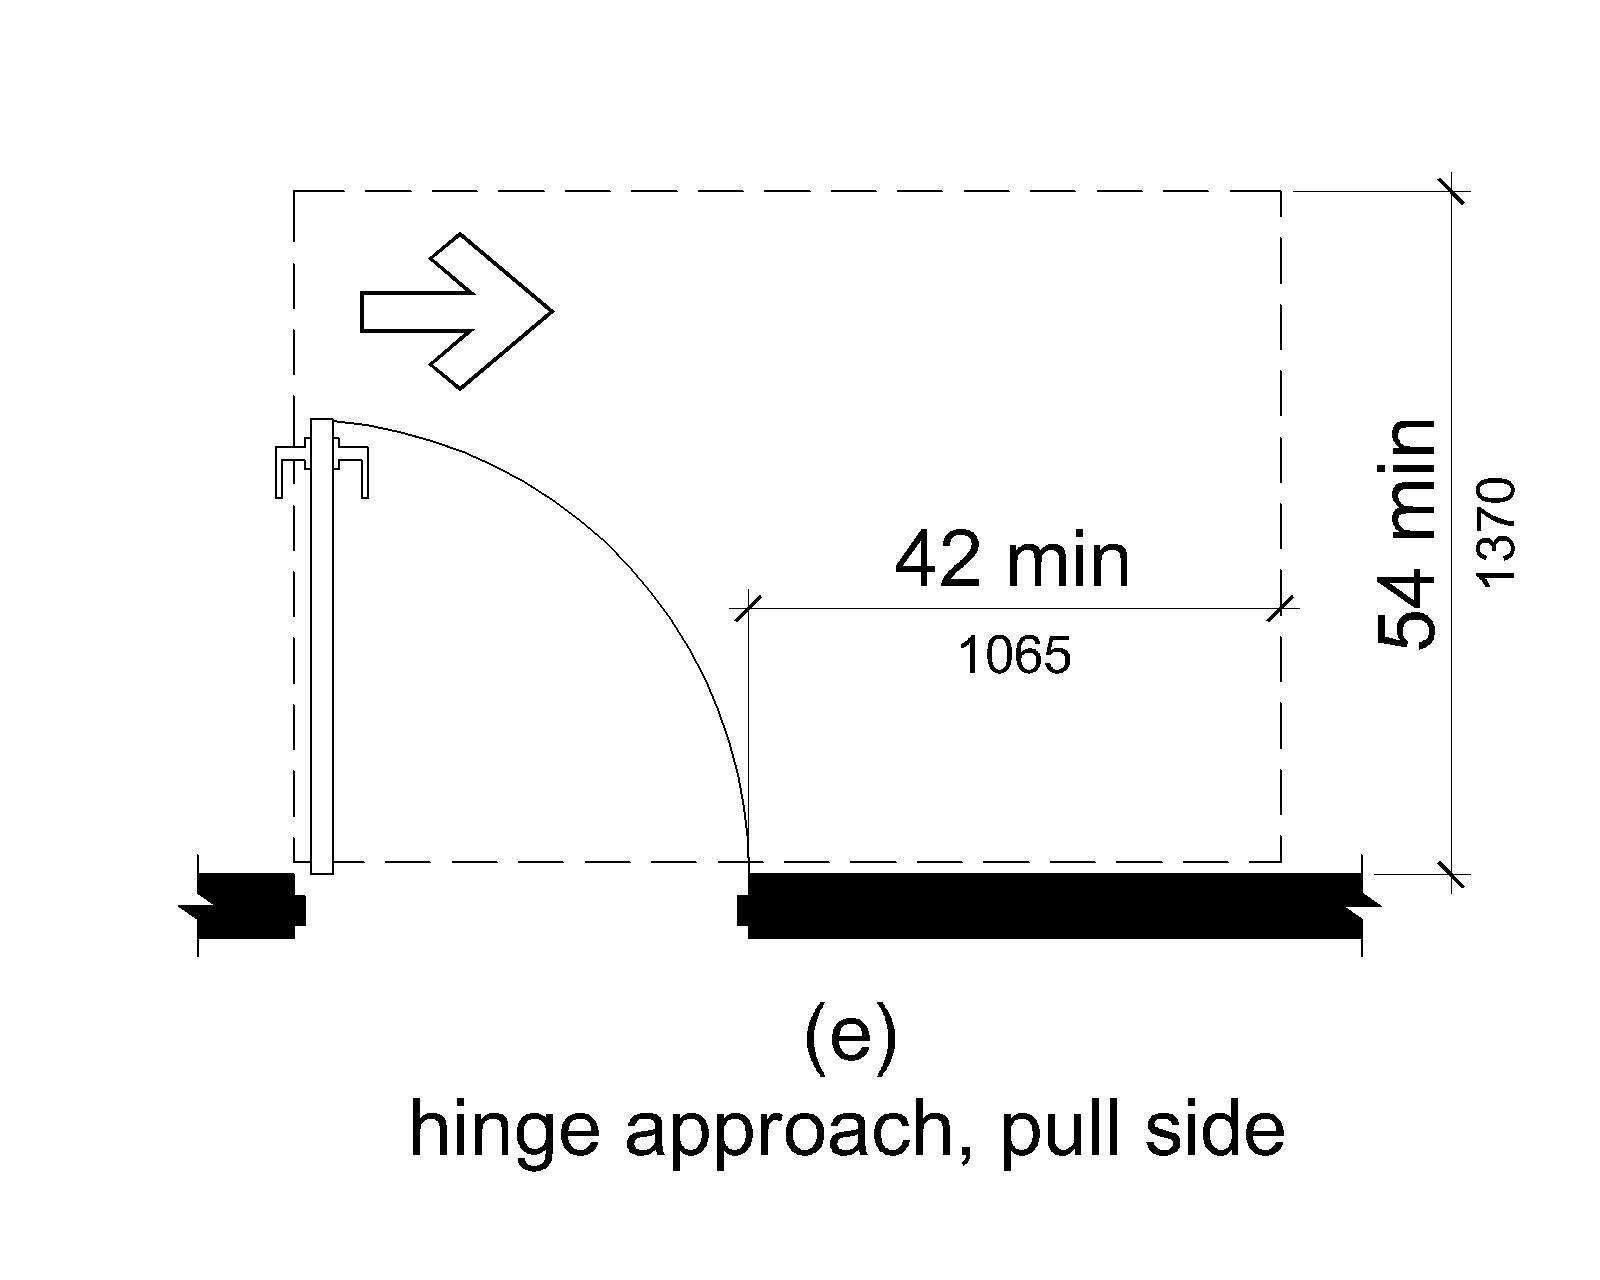 (e) If this space extends 42 inches (1065 mm) minimum beyond the latch side of the door, it can extend 54 inches (1370 mm) minimum perpendicular to the doorway.